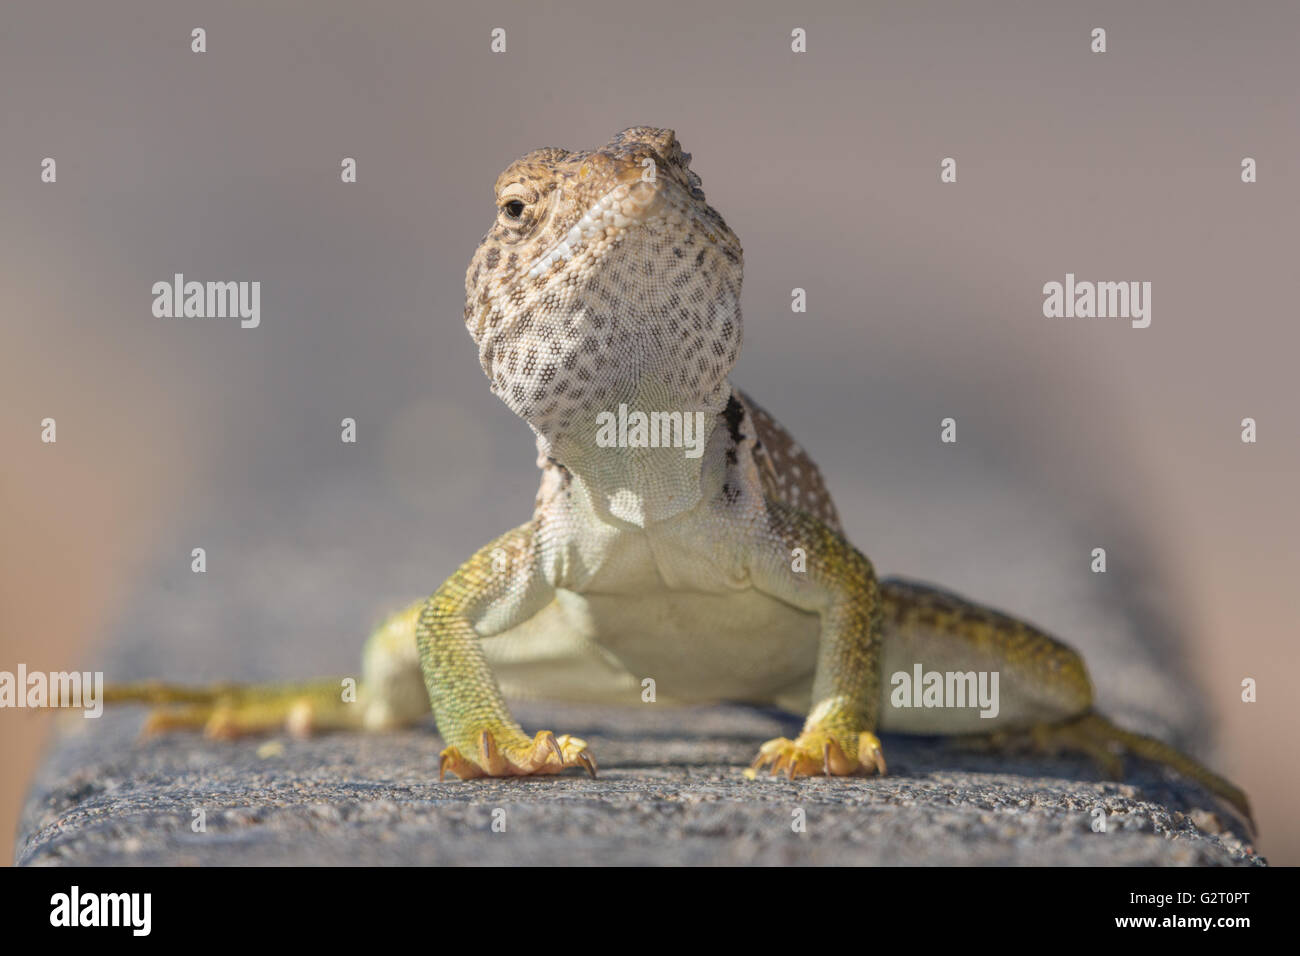 Eastern Collared lizard for sale - Crotaphytus collaris | Upcoming ...